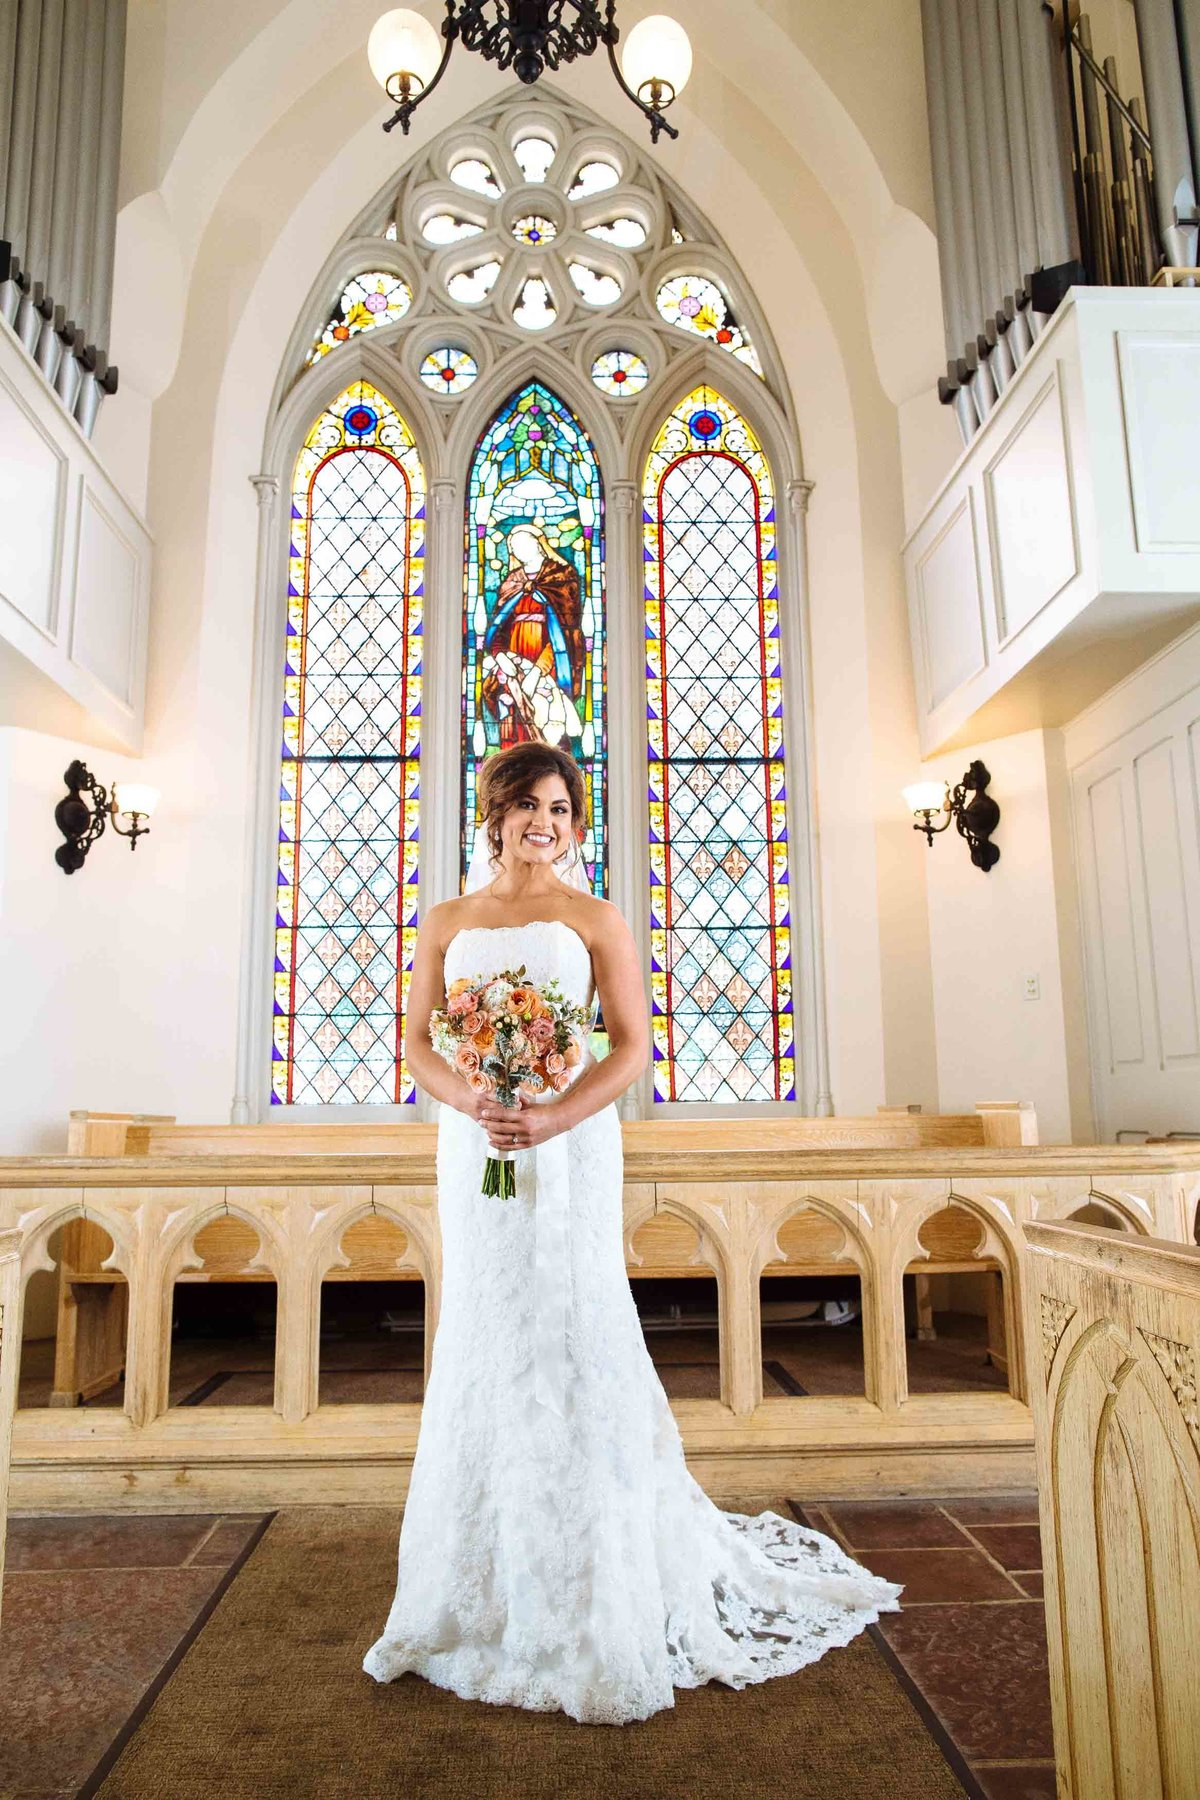 A bride standing inside a church with stained glass windows in the background.